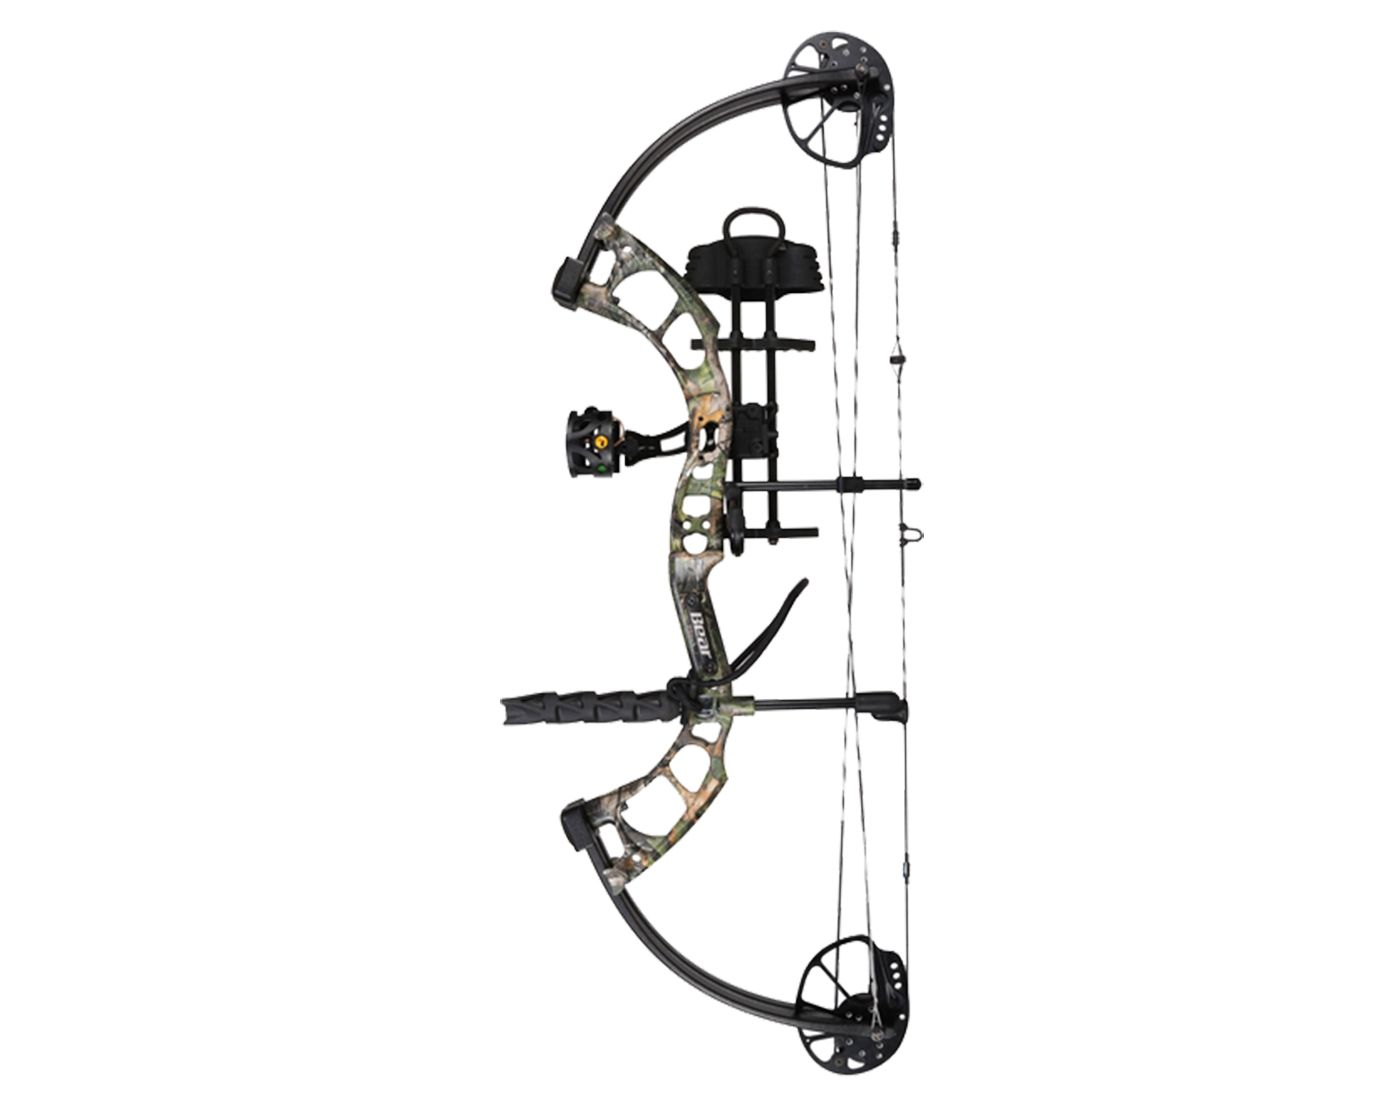 Bear Archery Cruzer X RTH Compound Bow Package